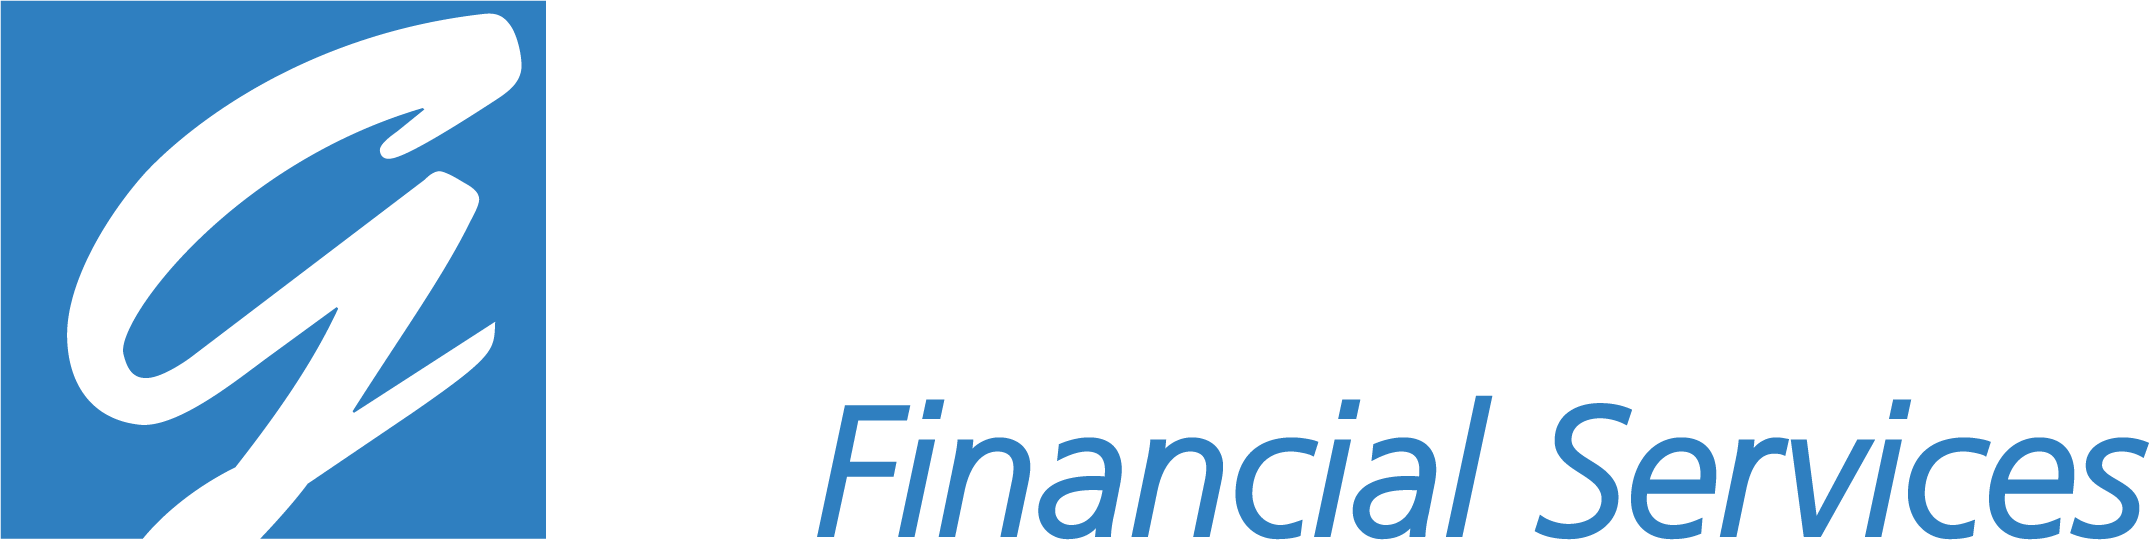 Logo for GP Financial Services